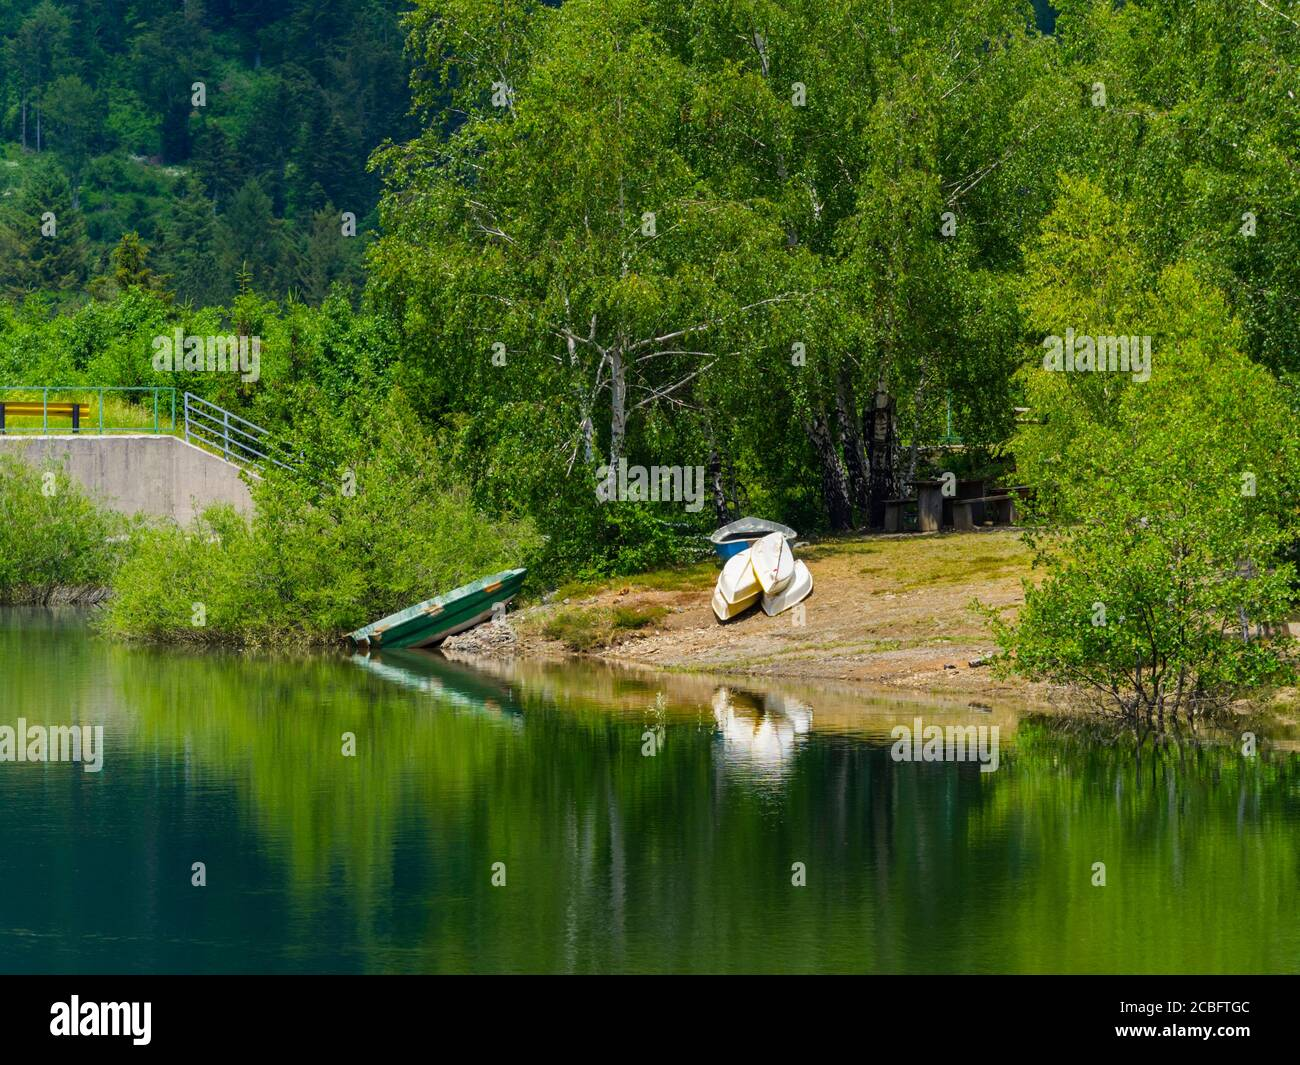 Inverter boats ashore Green forest pretty beautiful preserved nature natural environment Spring season lake Lepenica near Fuzine in Croatia Europe Stock Photo